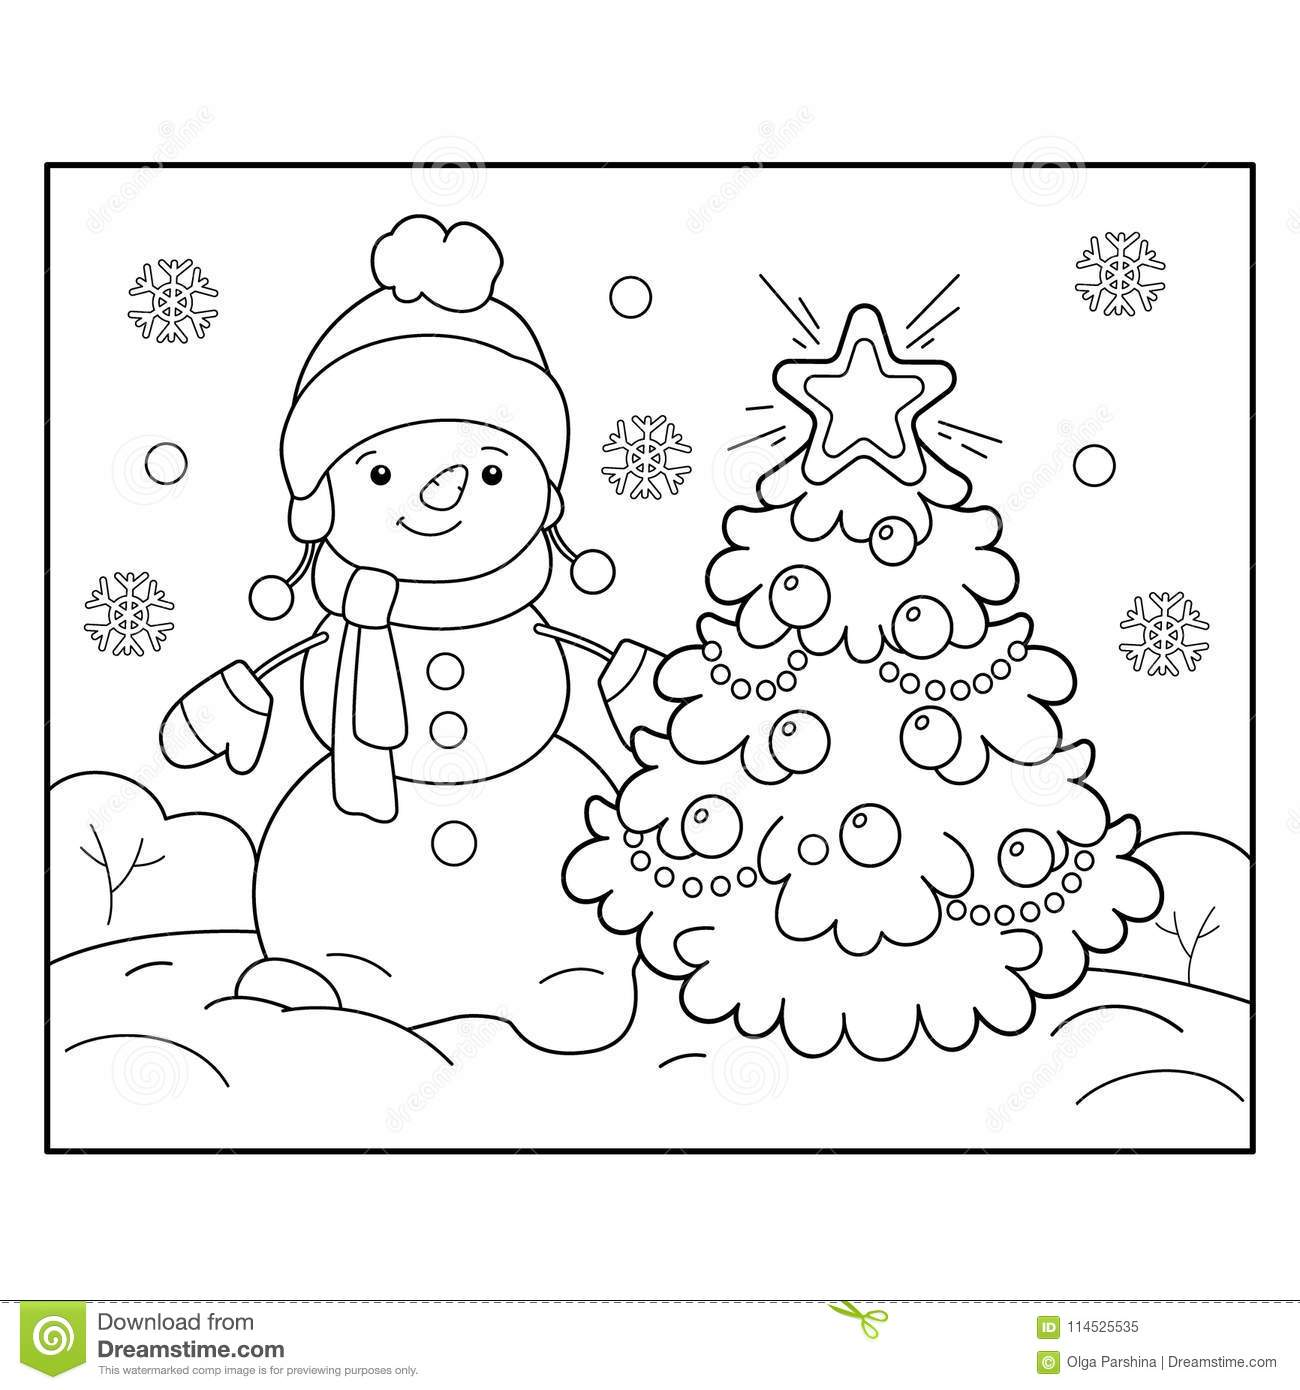 Coloring Page Outline Of Snowman With Christmas Tree ...